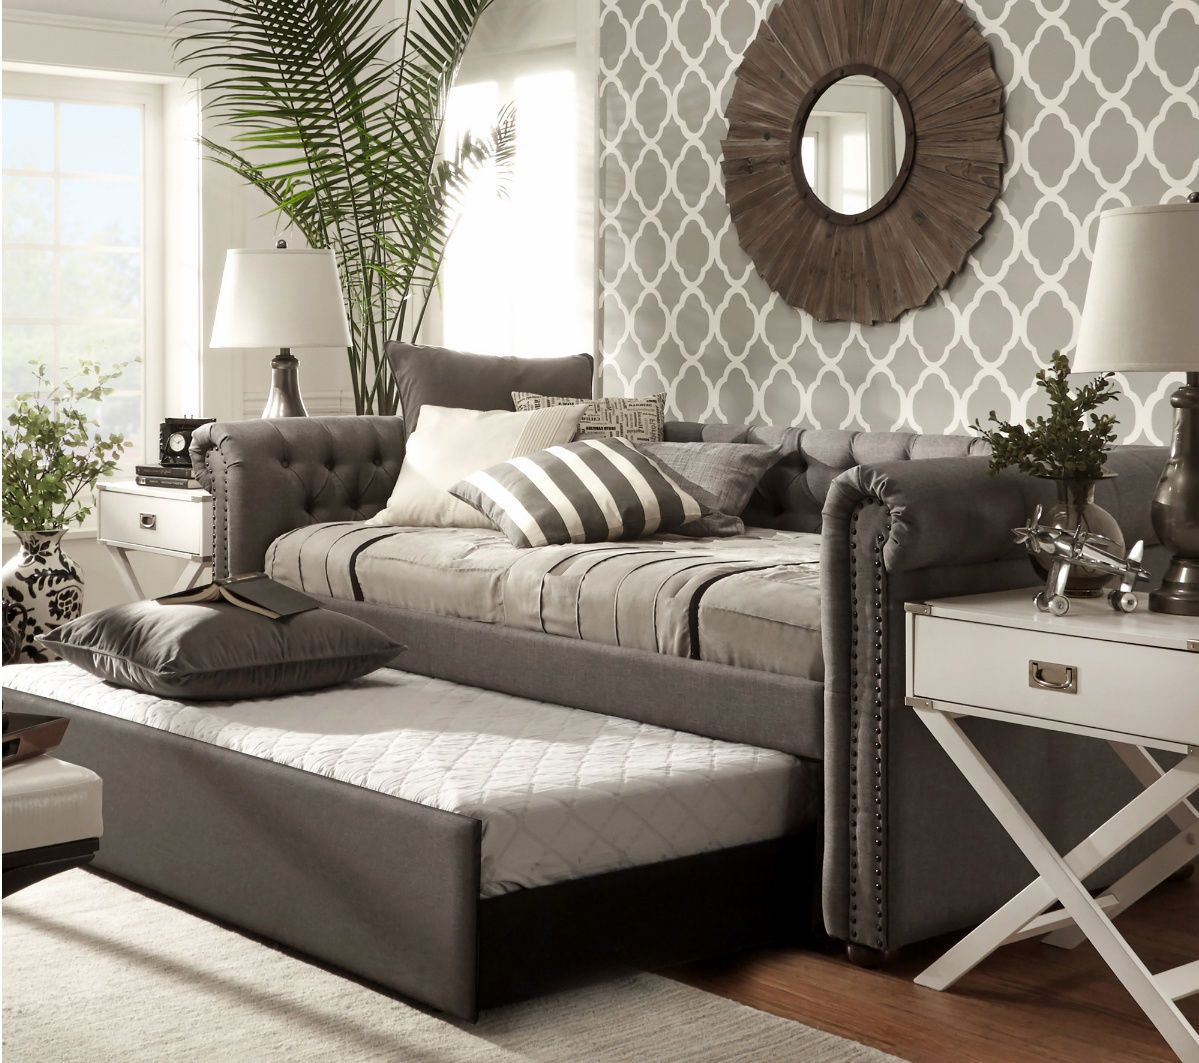 Day Beds For Teens - Daybed with trundle beds for kids adult teens upholstered dorm guest room modern in home